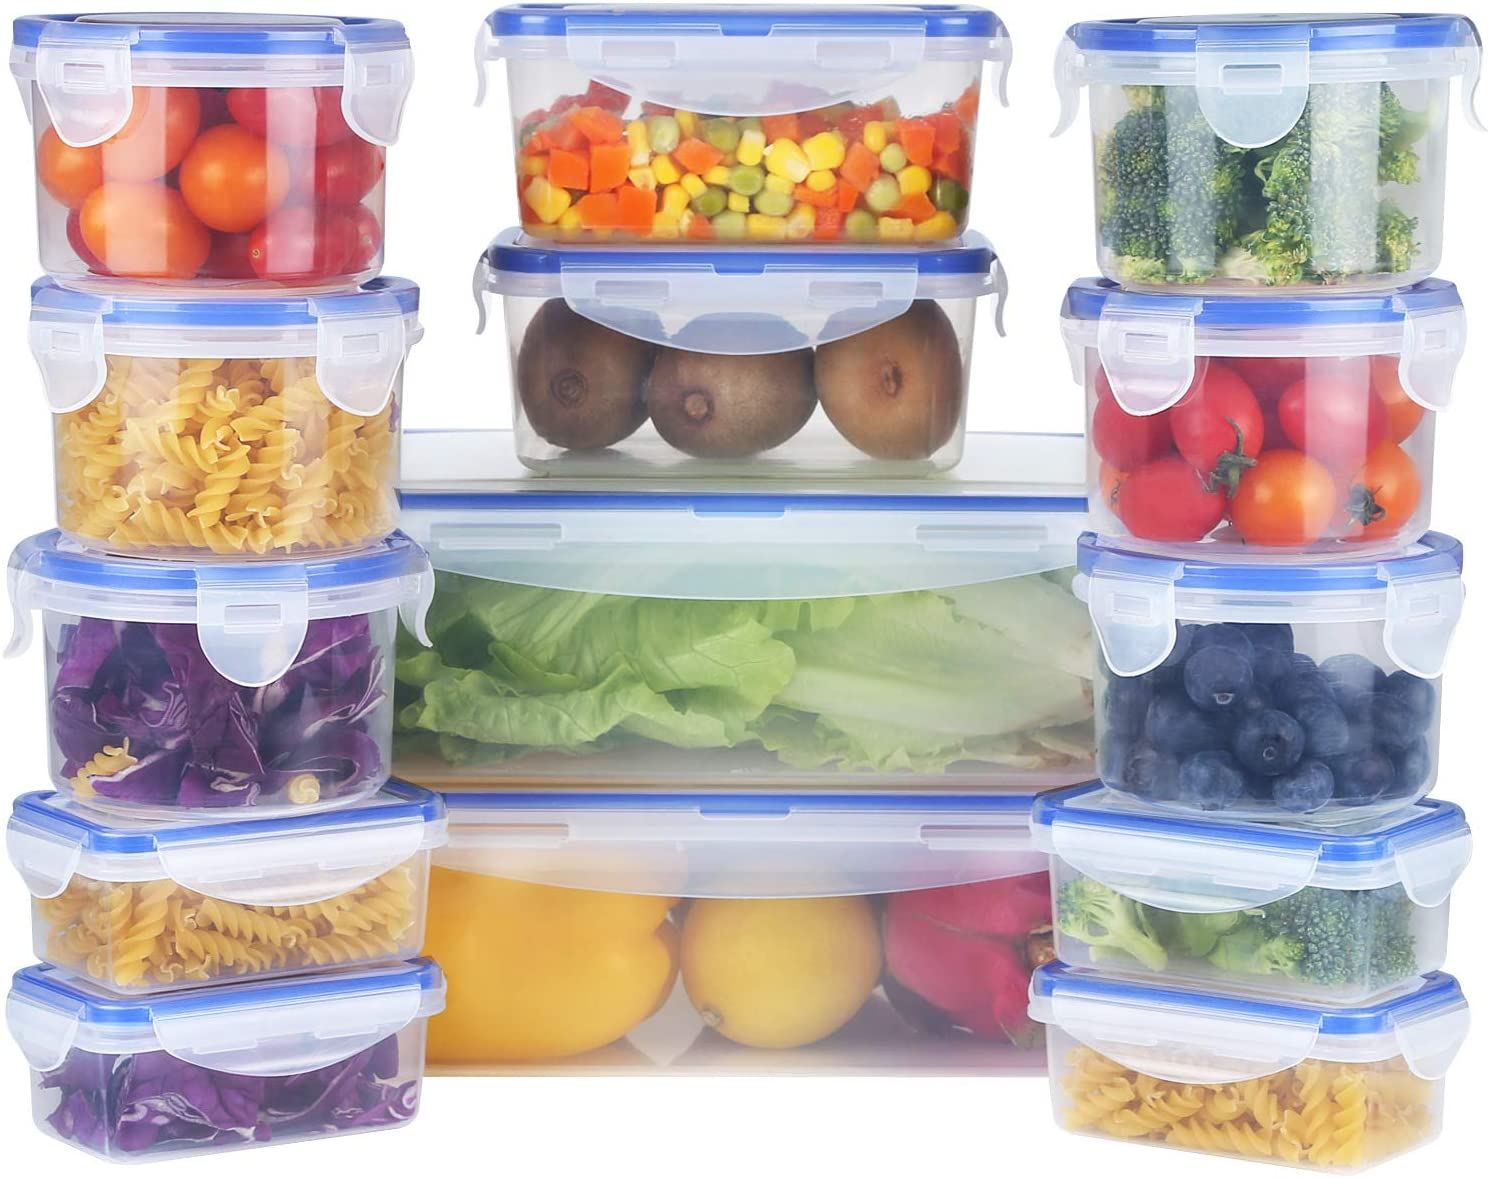 Mengico Food Storage Kansas City Mall Containers store with Plastic Contain Lids -